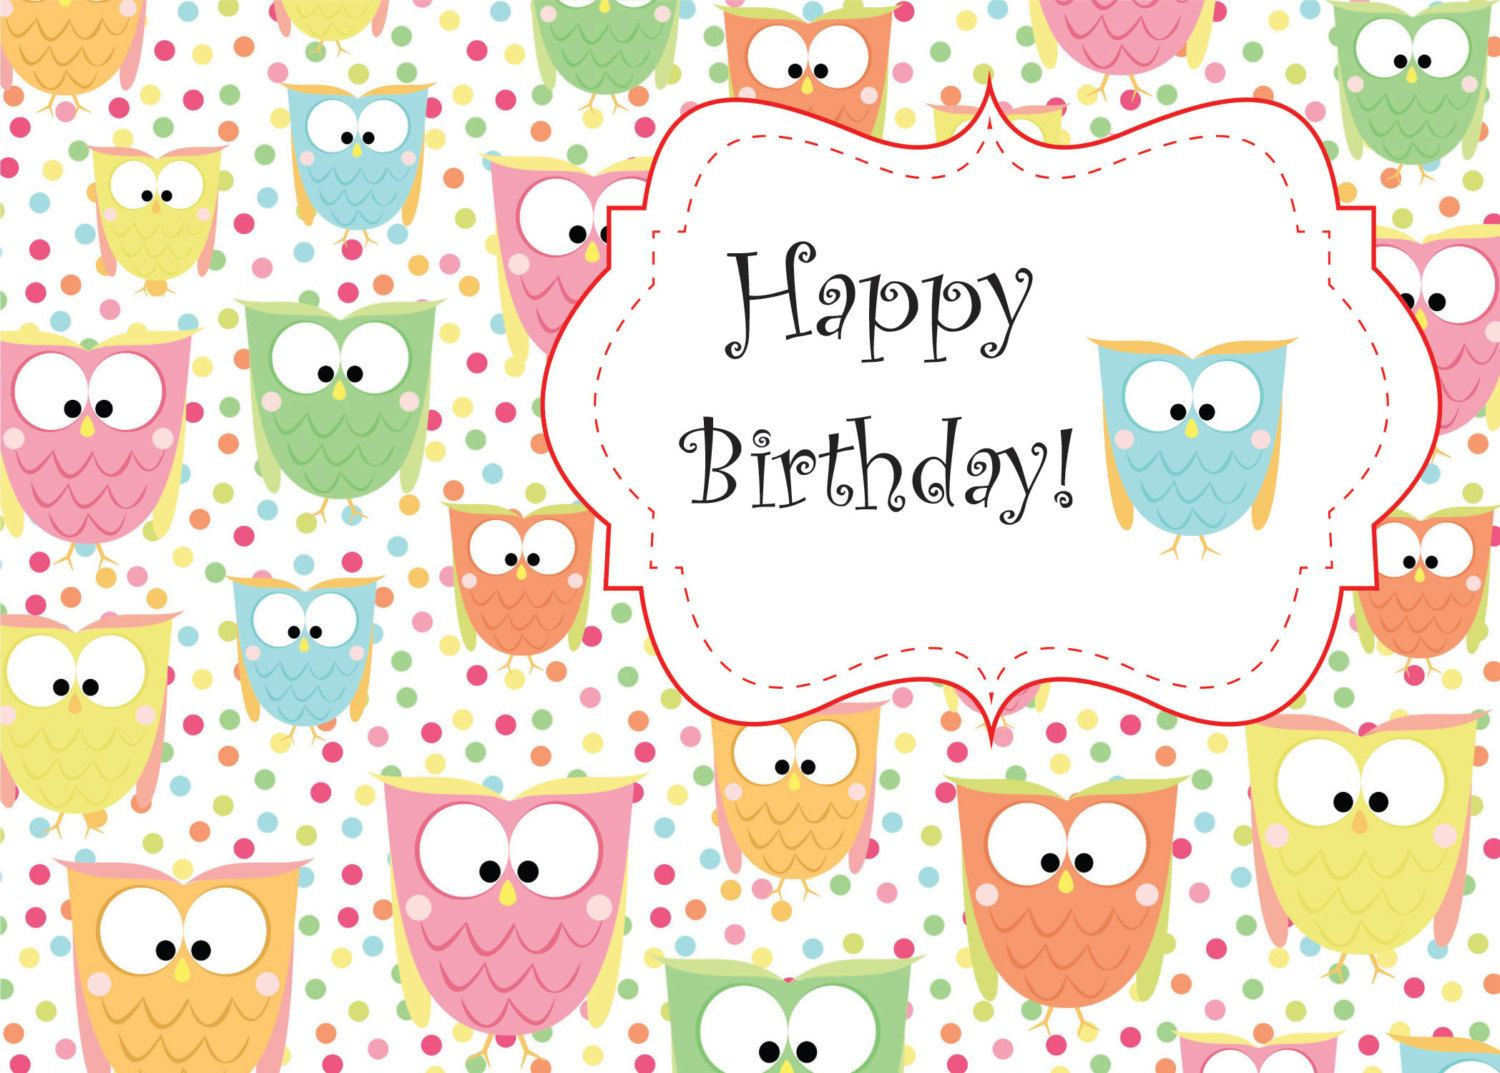 Printable Birthday Cards HD Wallpapers Download Free Tumblr